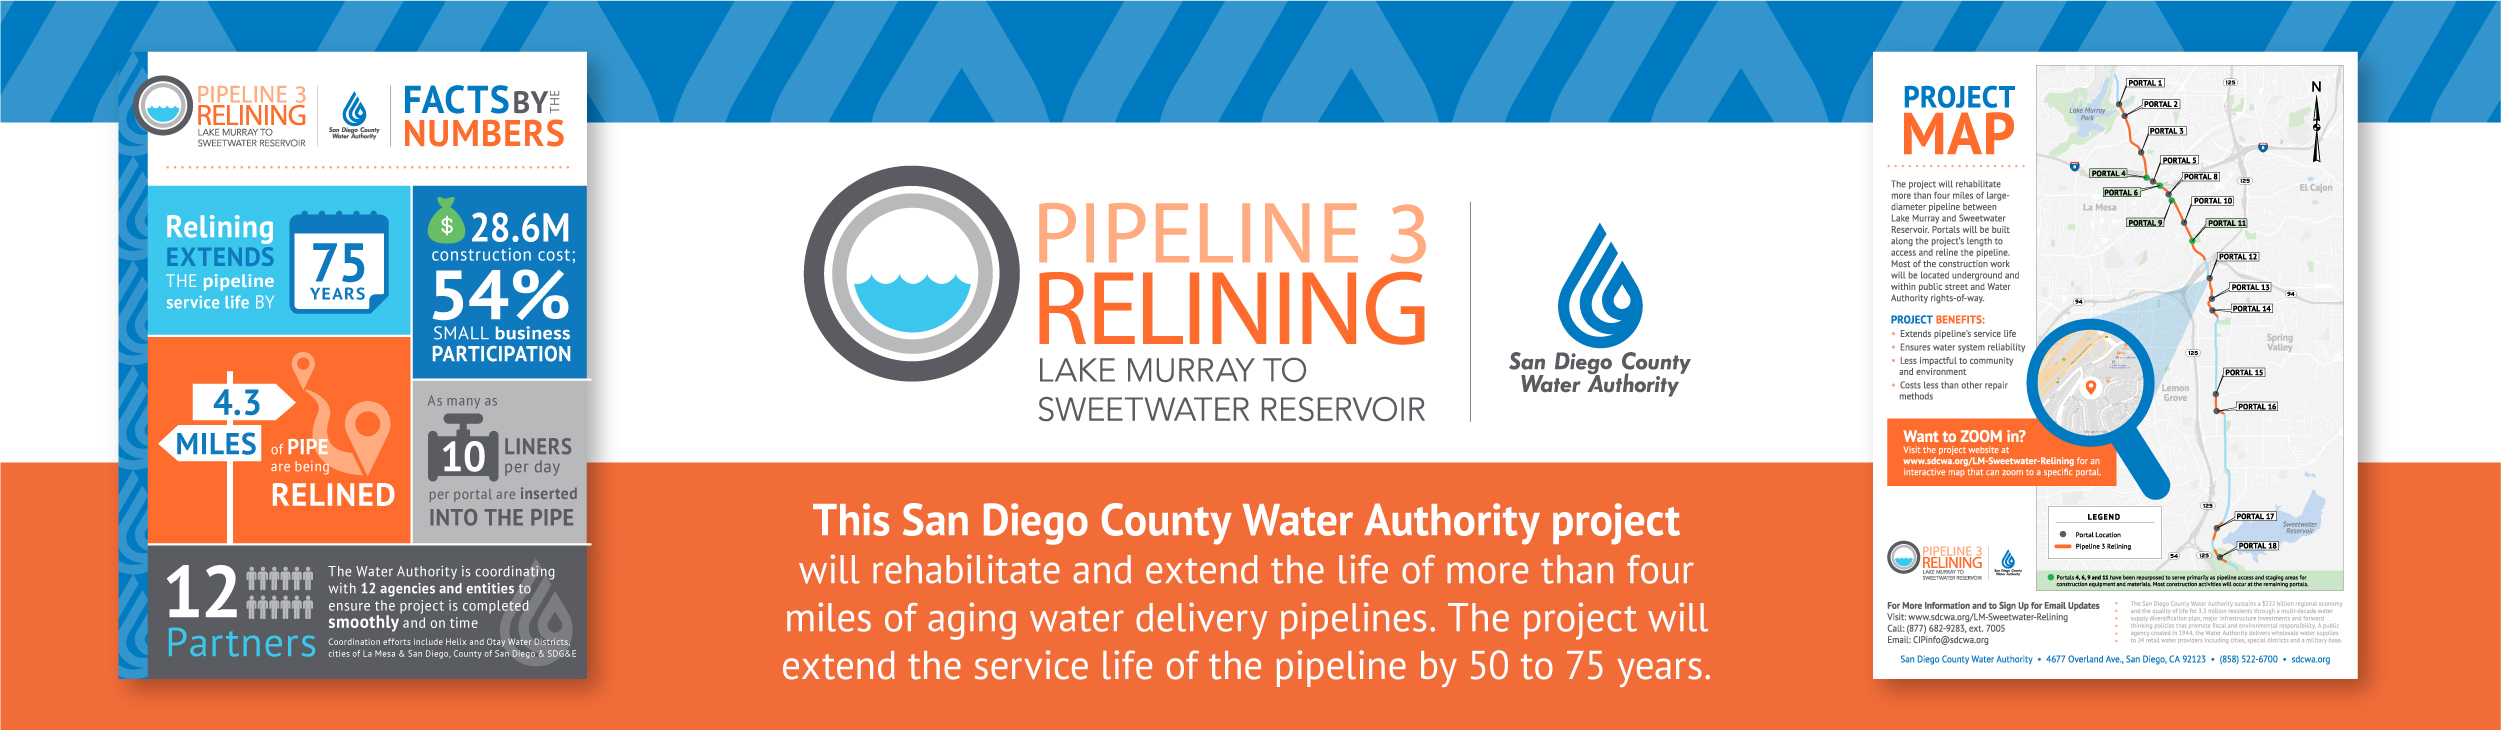 Construction Relations and Public Affairs – Pipeline 3 Relining